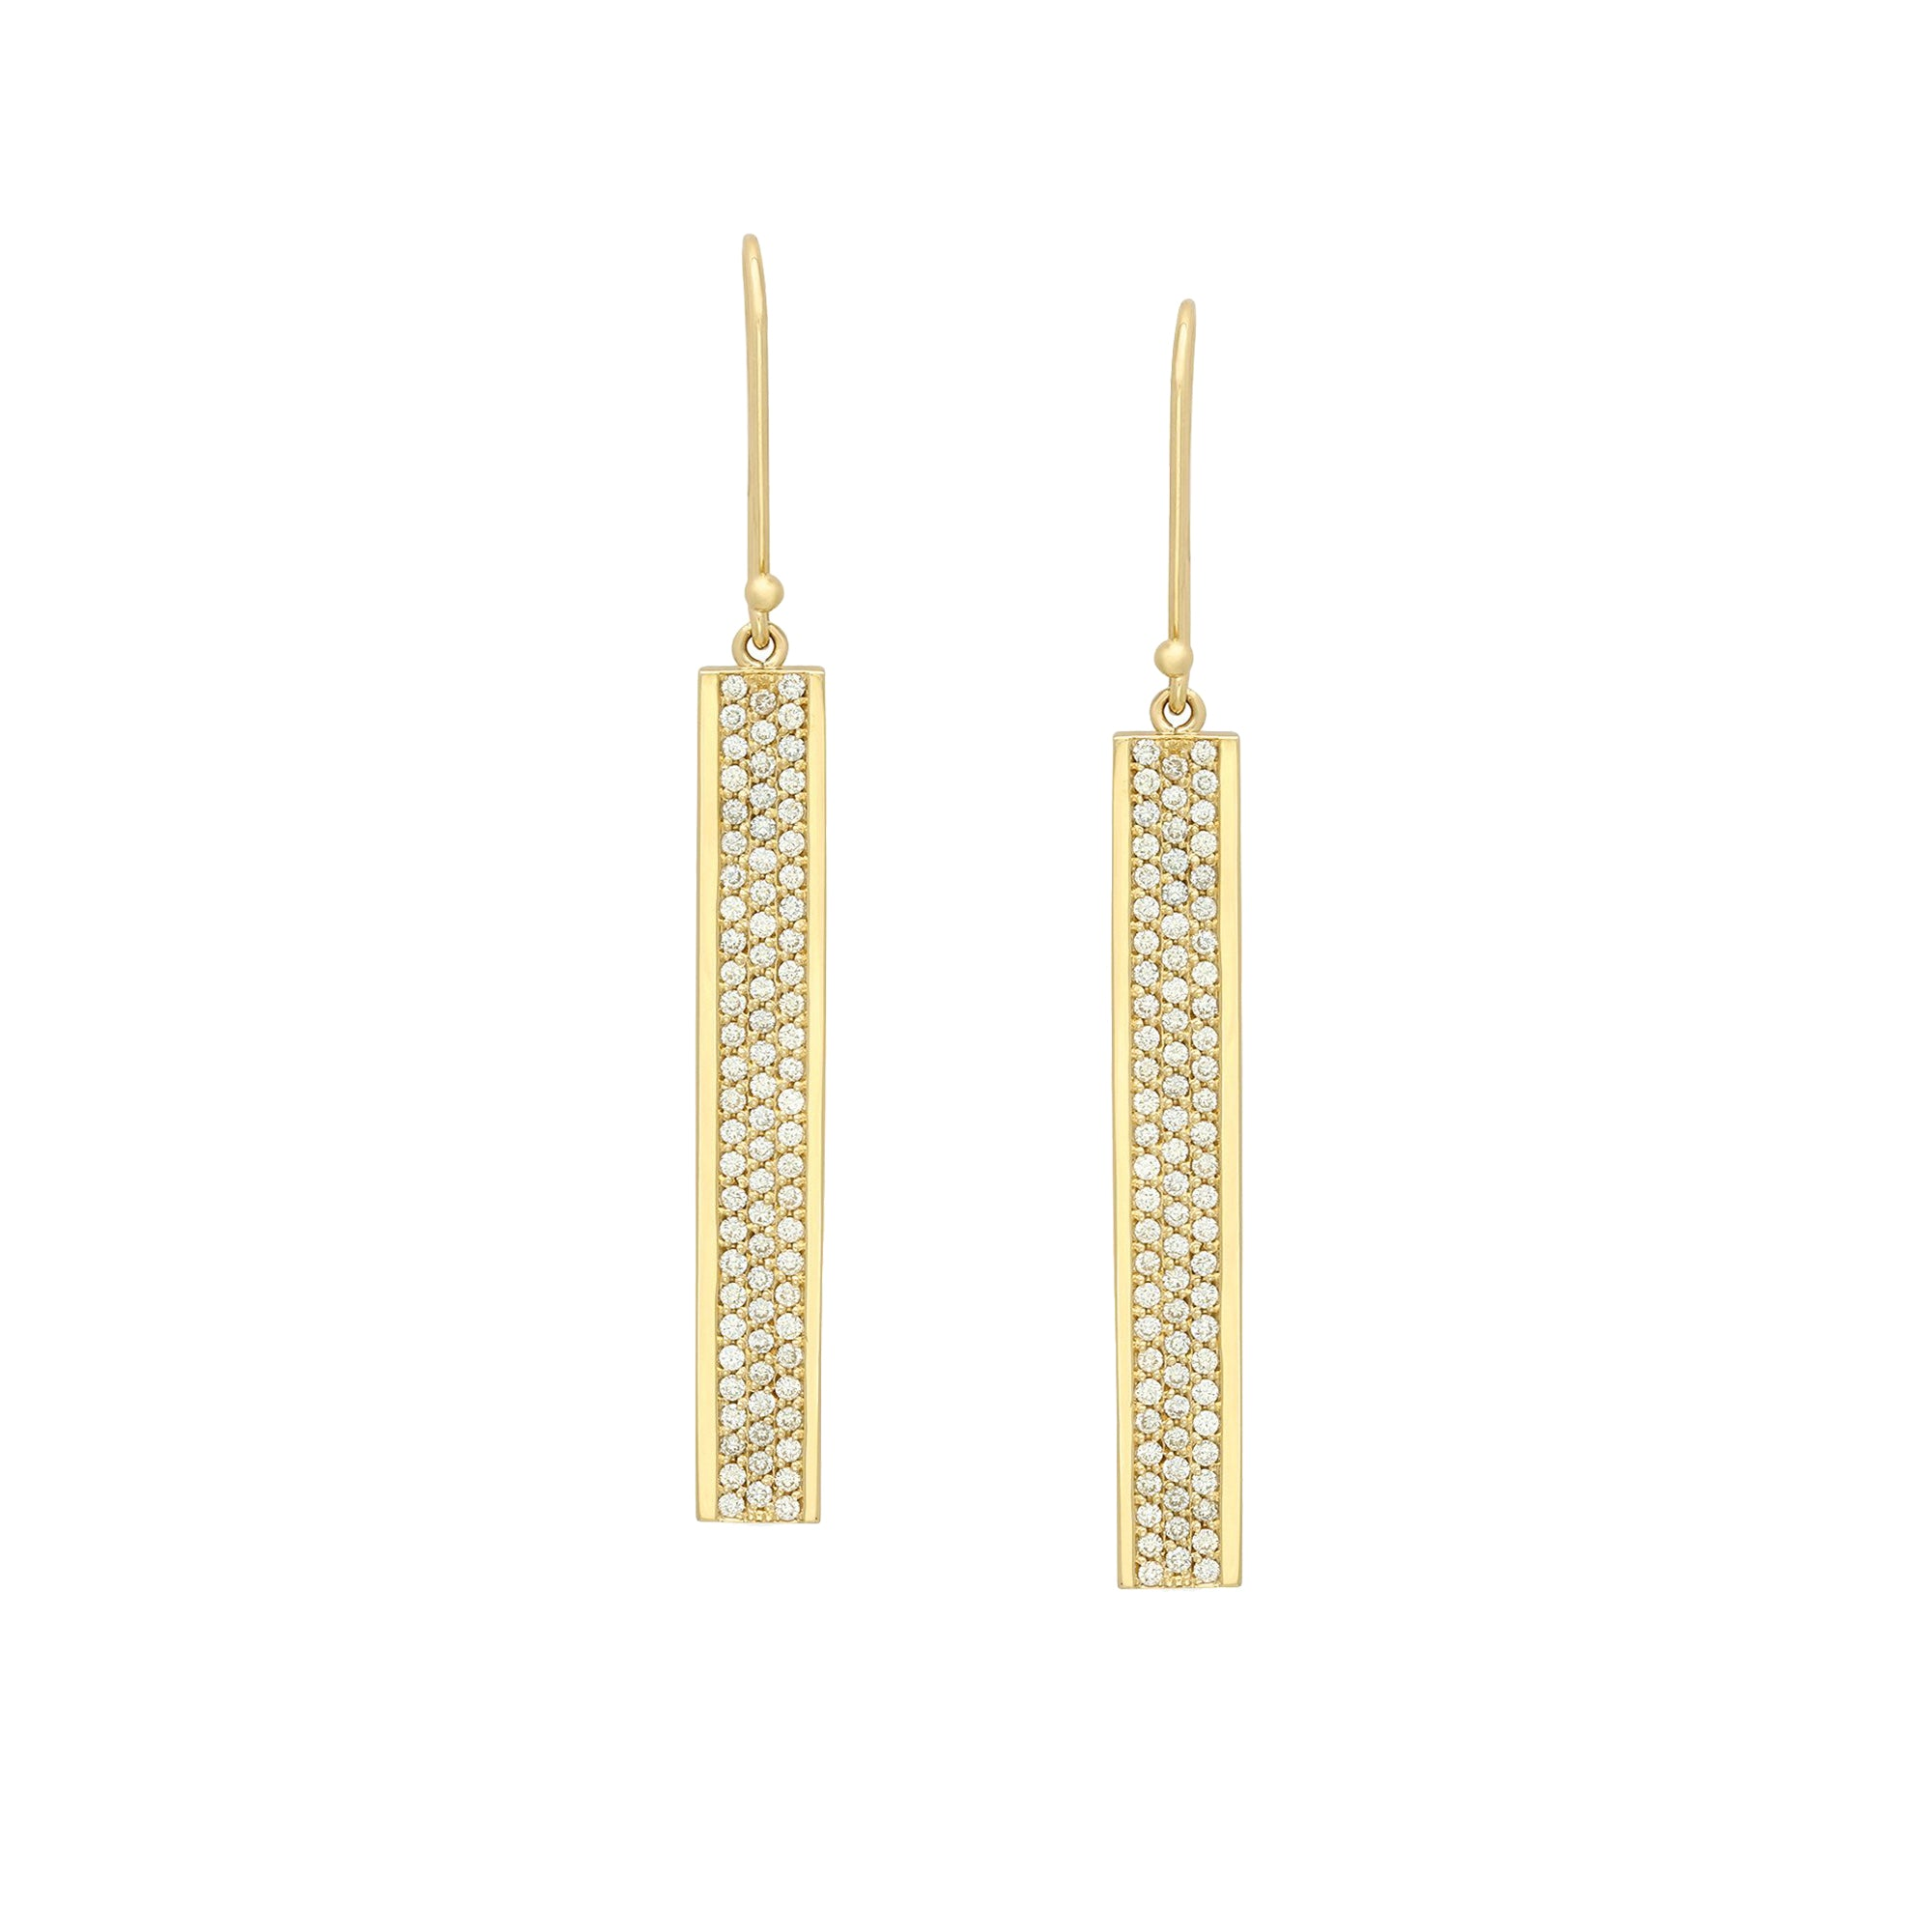 Gold & White Diamond Flat Bar Diamond Earrings by Established for Broken English Jewelry